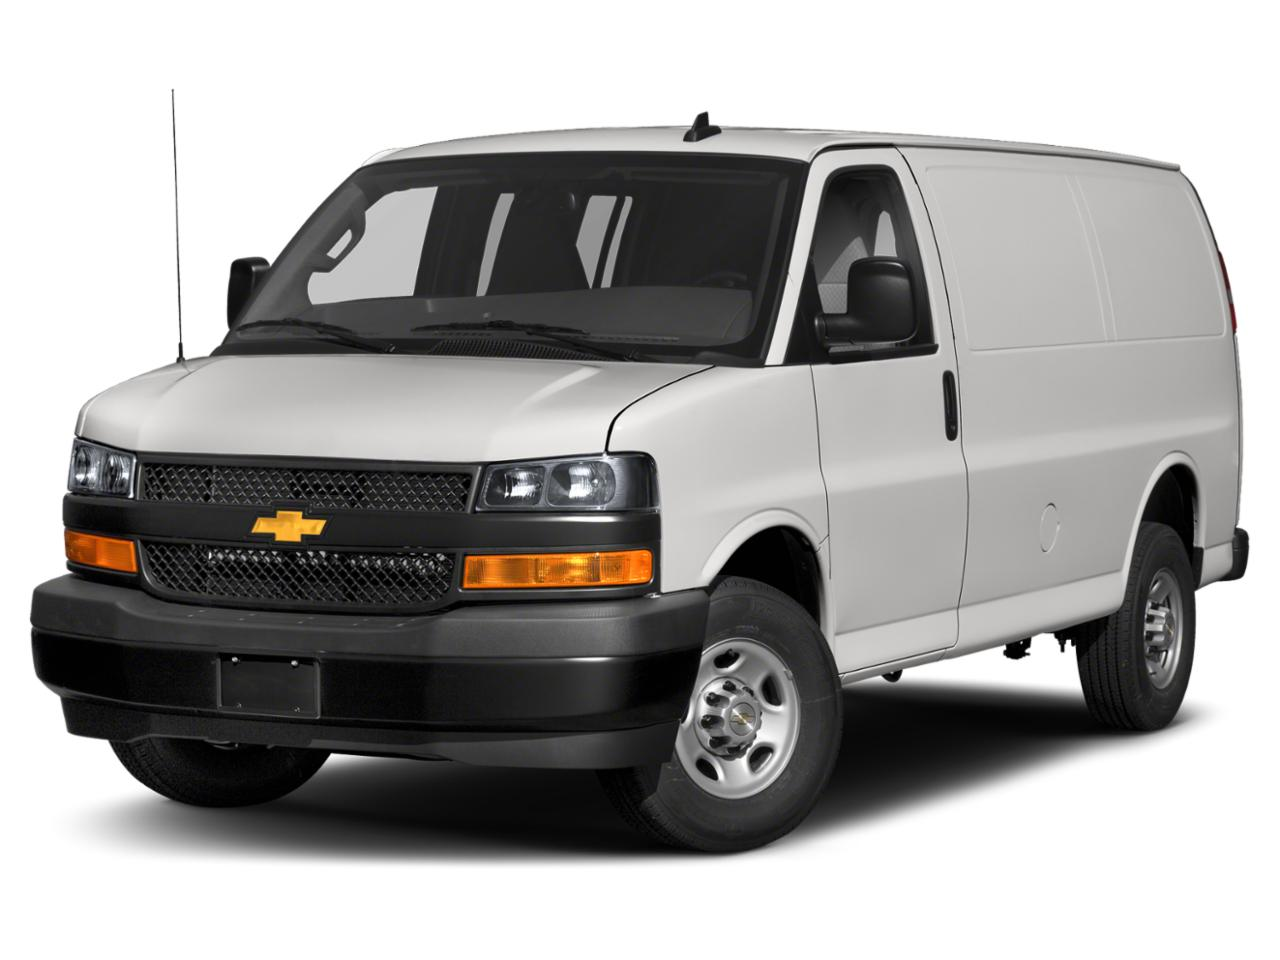 2019 Chevrolet Express Cargo Van Vehicle Photo in Terryville, CT 06786